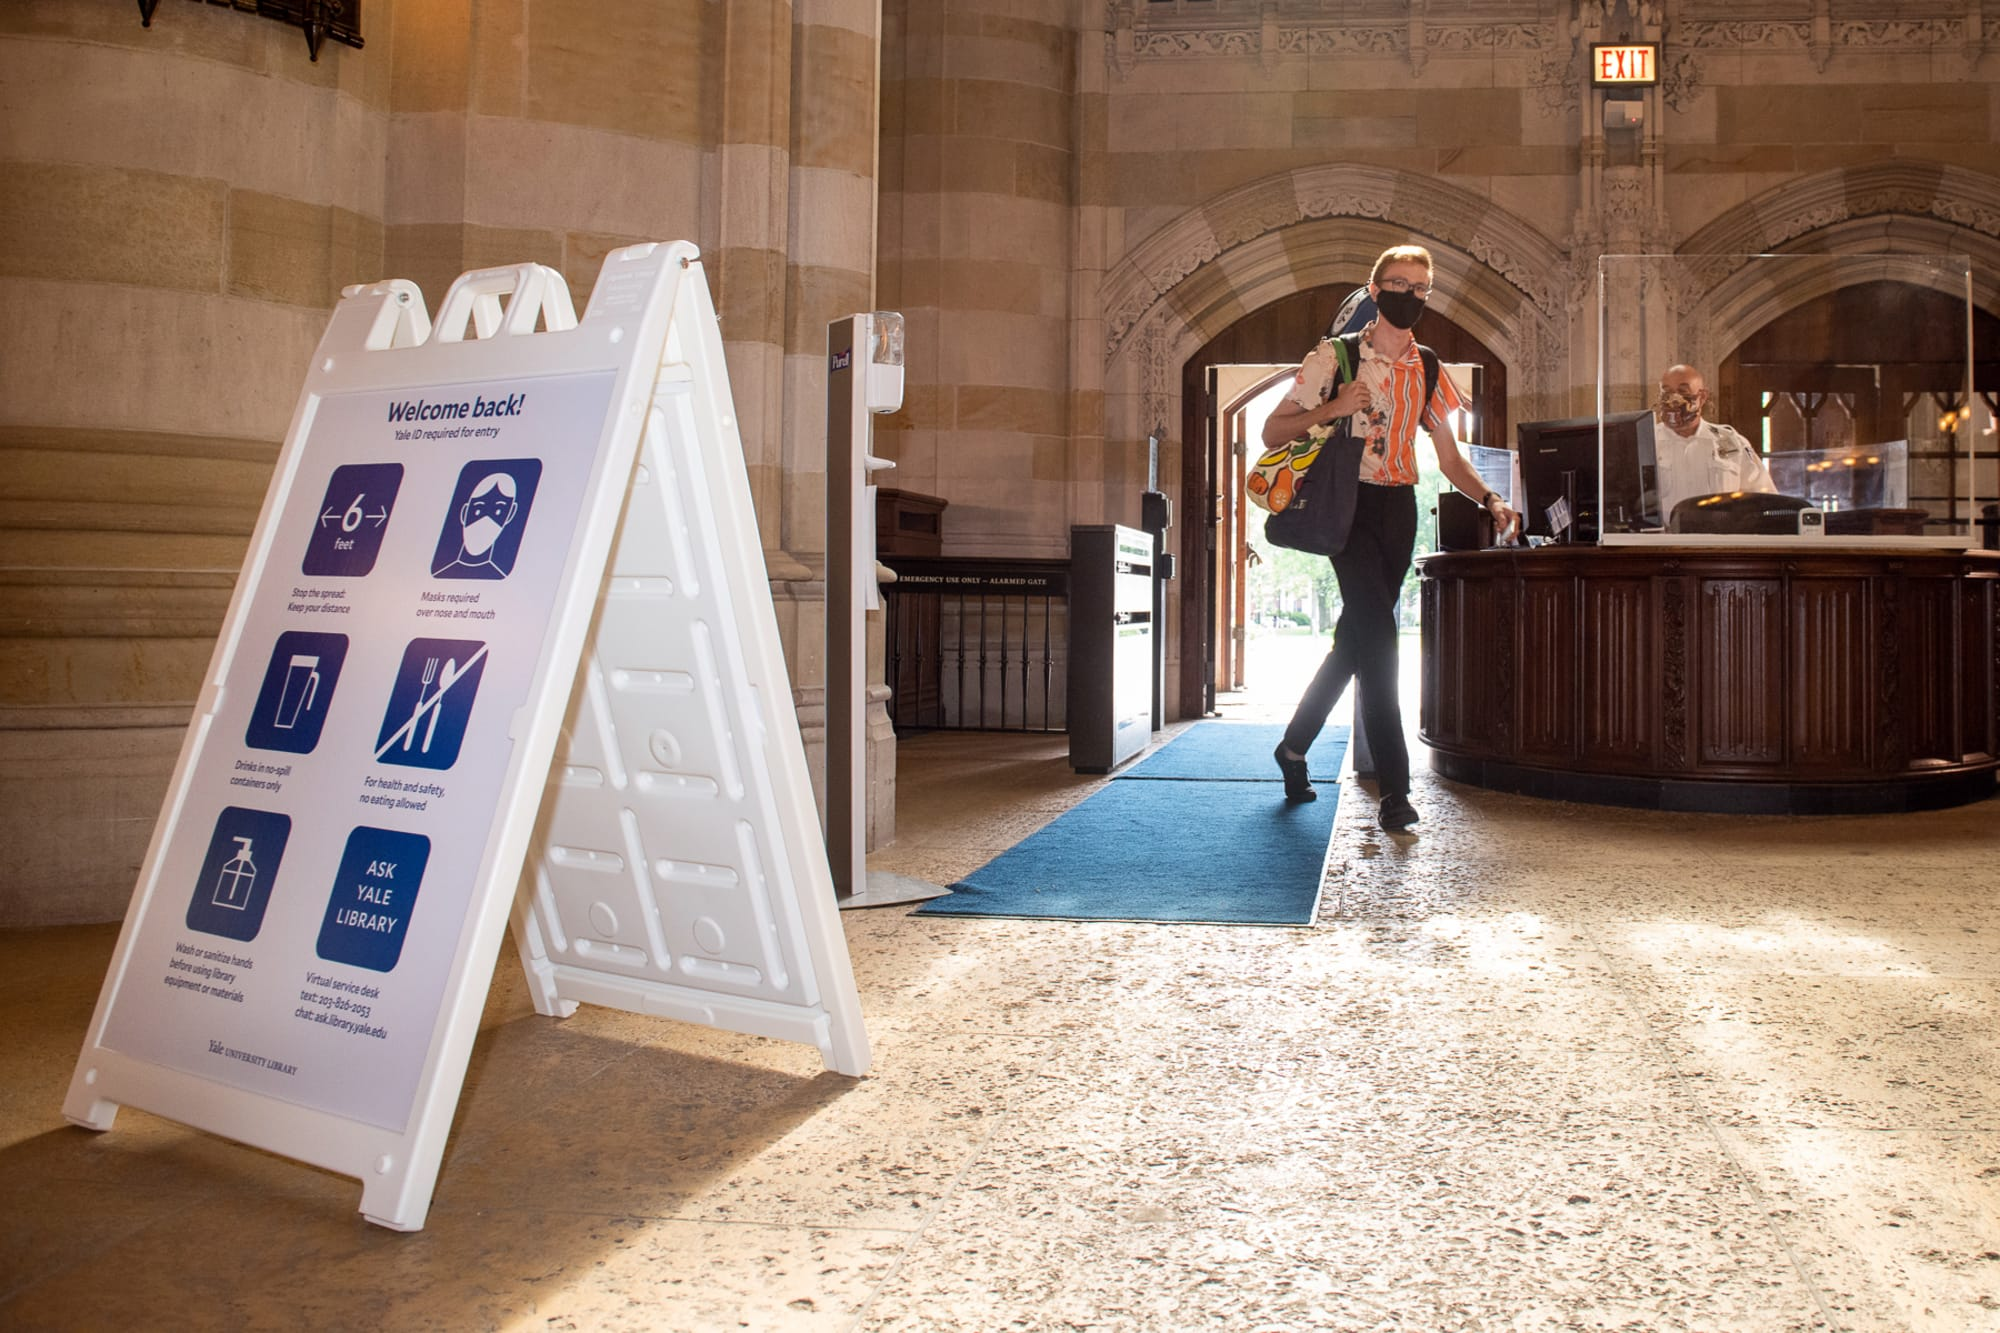 Man entering Sterling nave walking past library security officer at the entrance desk.